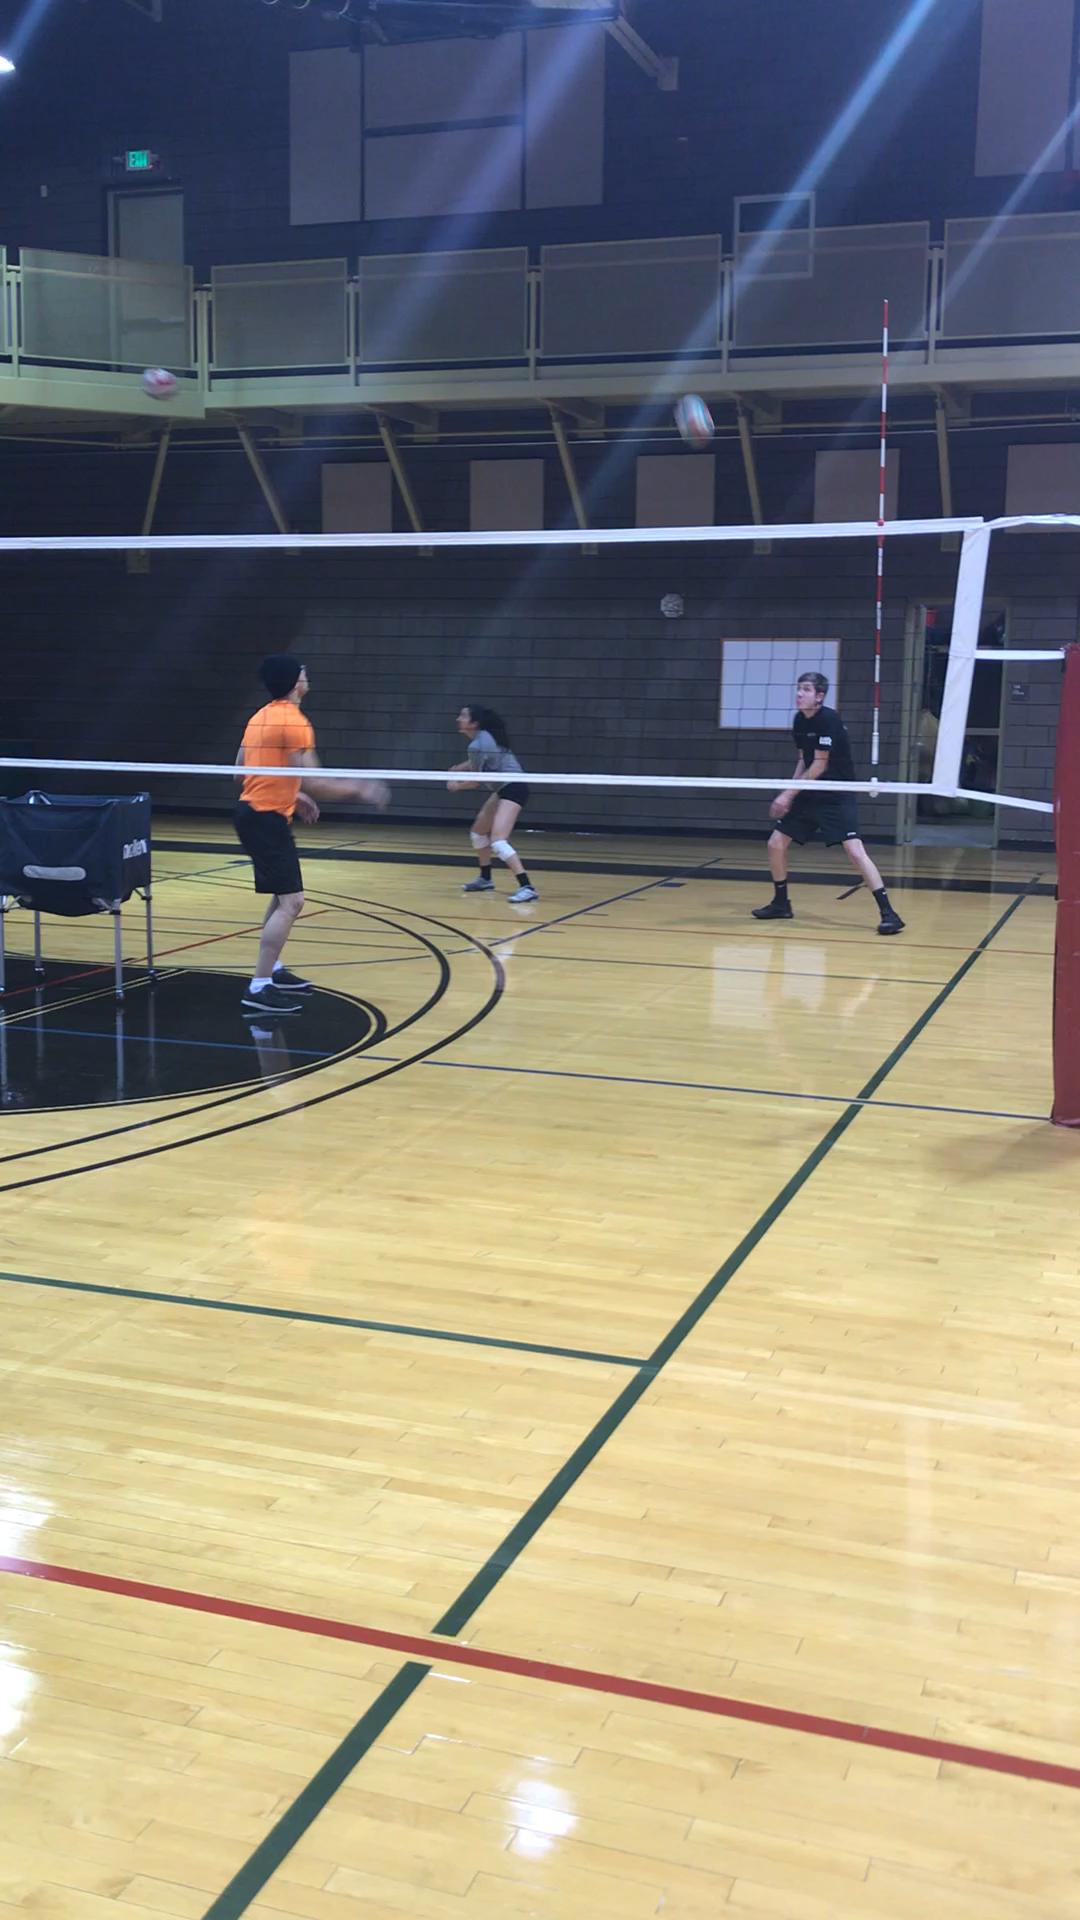 Four Volleyball Digging Drills We Do In Our Weekly Boot Camp Classes Video Coaching Volleyball Volleyball Drills Volleyball Practice